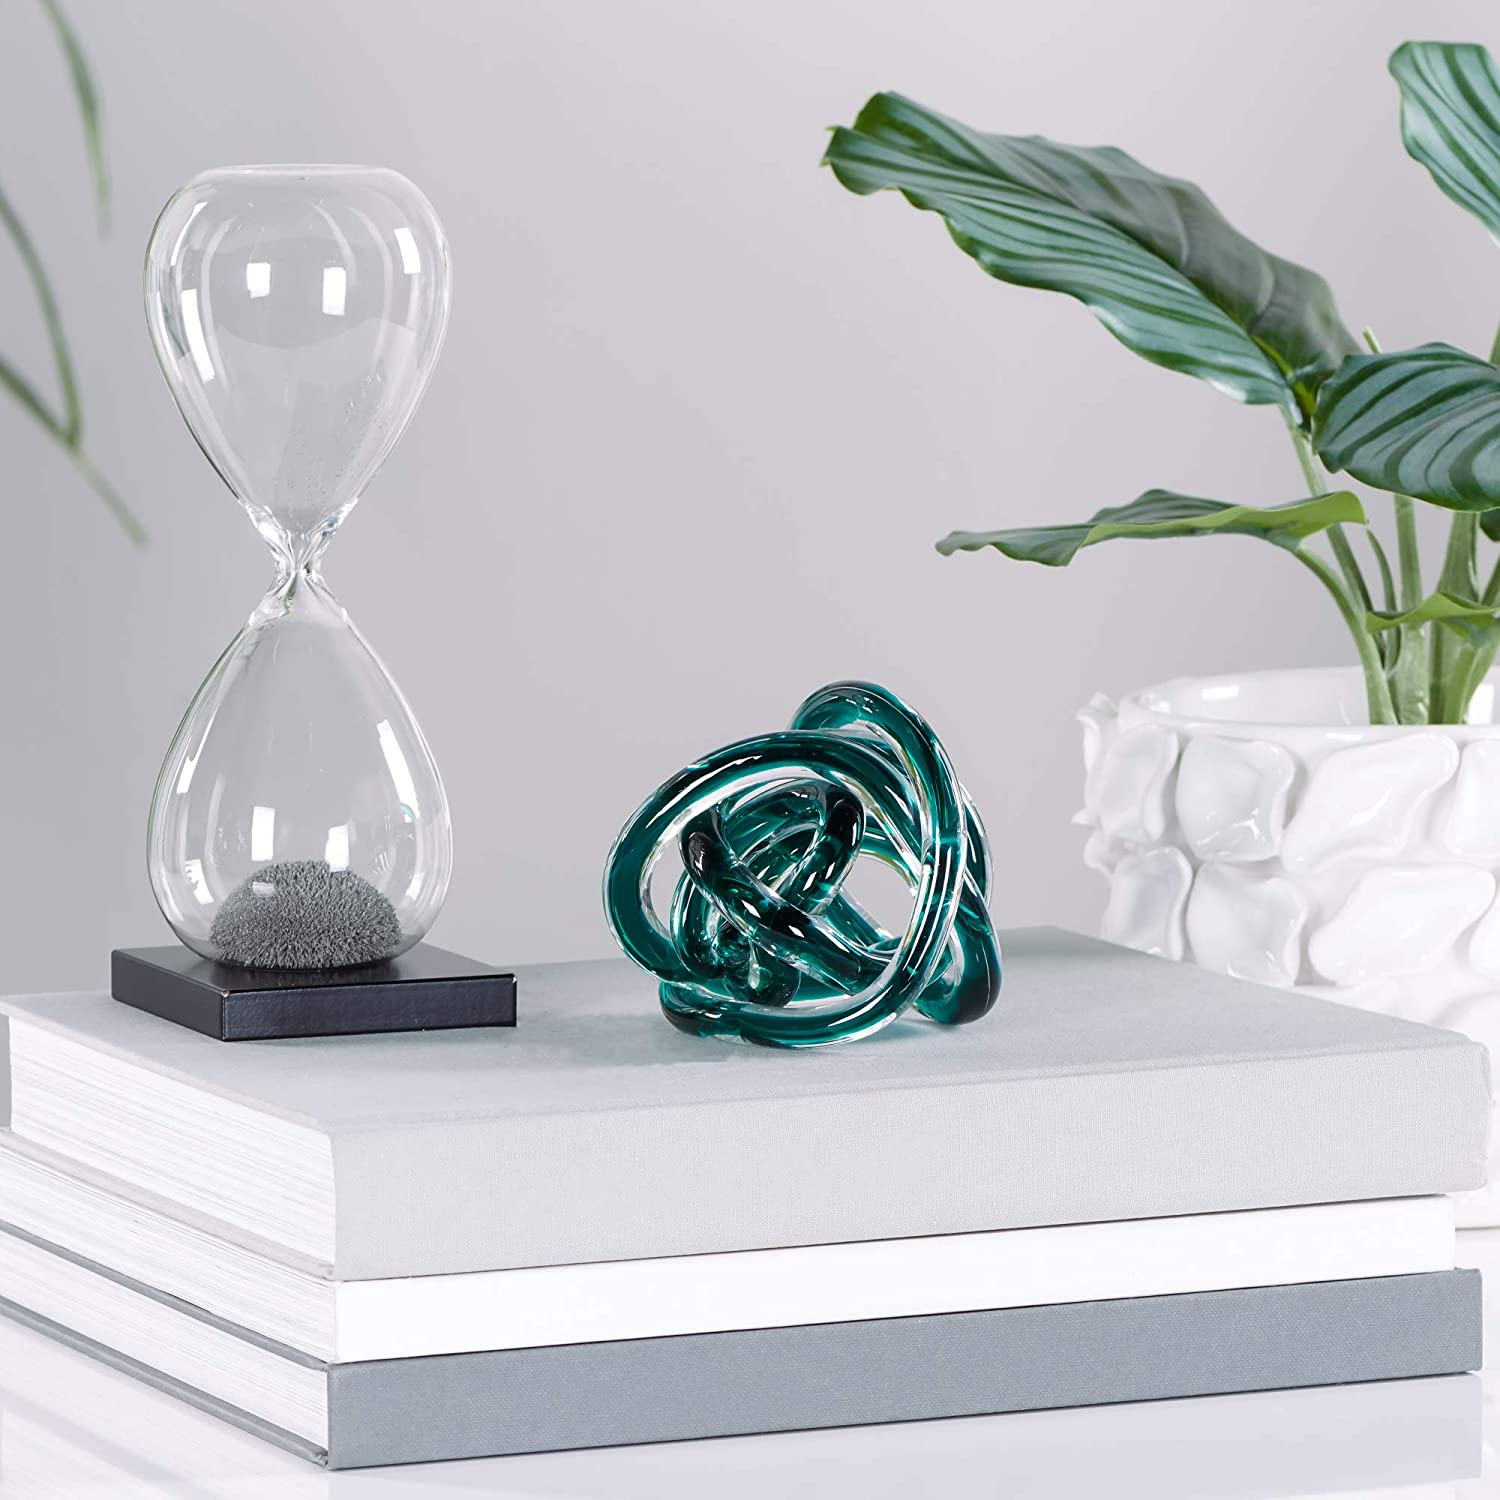 Shabby Chic Classy and Sophisticated Torre /& Tagus Teal Orbit Glass D/écor Knot 4.5 /& 3 Home Decoration Set of Two Elegant